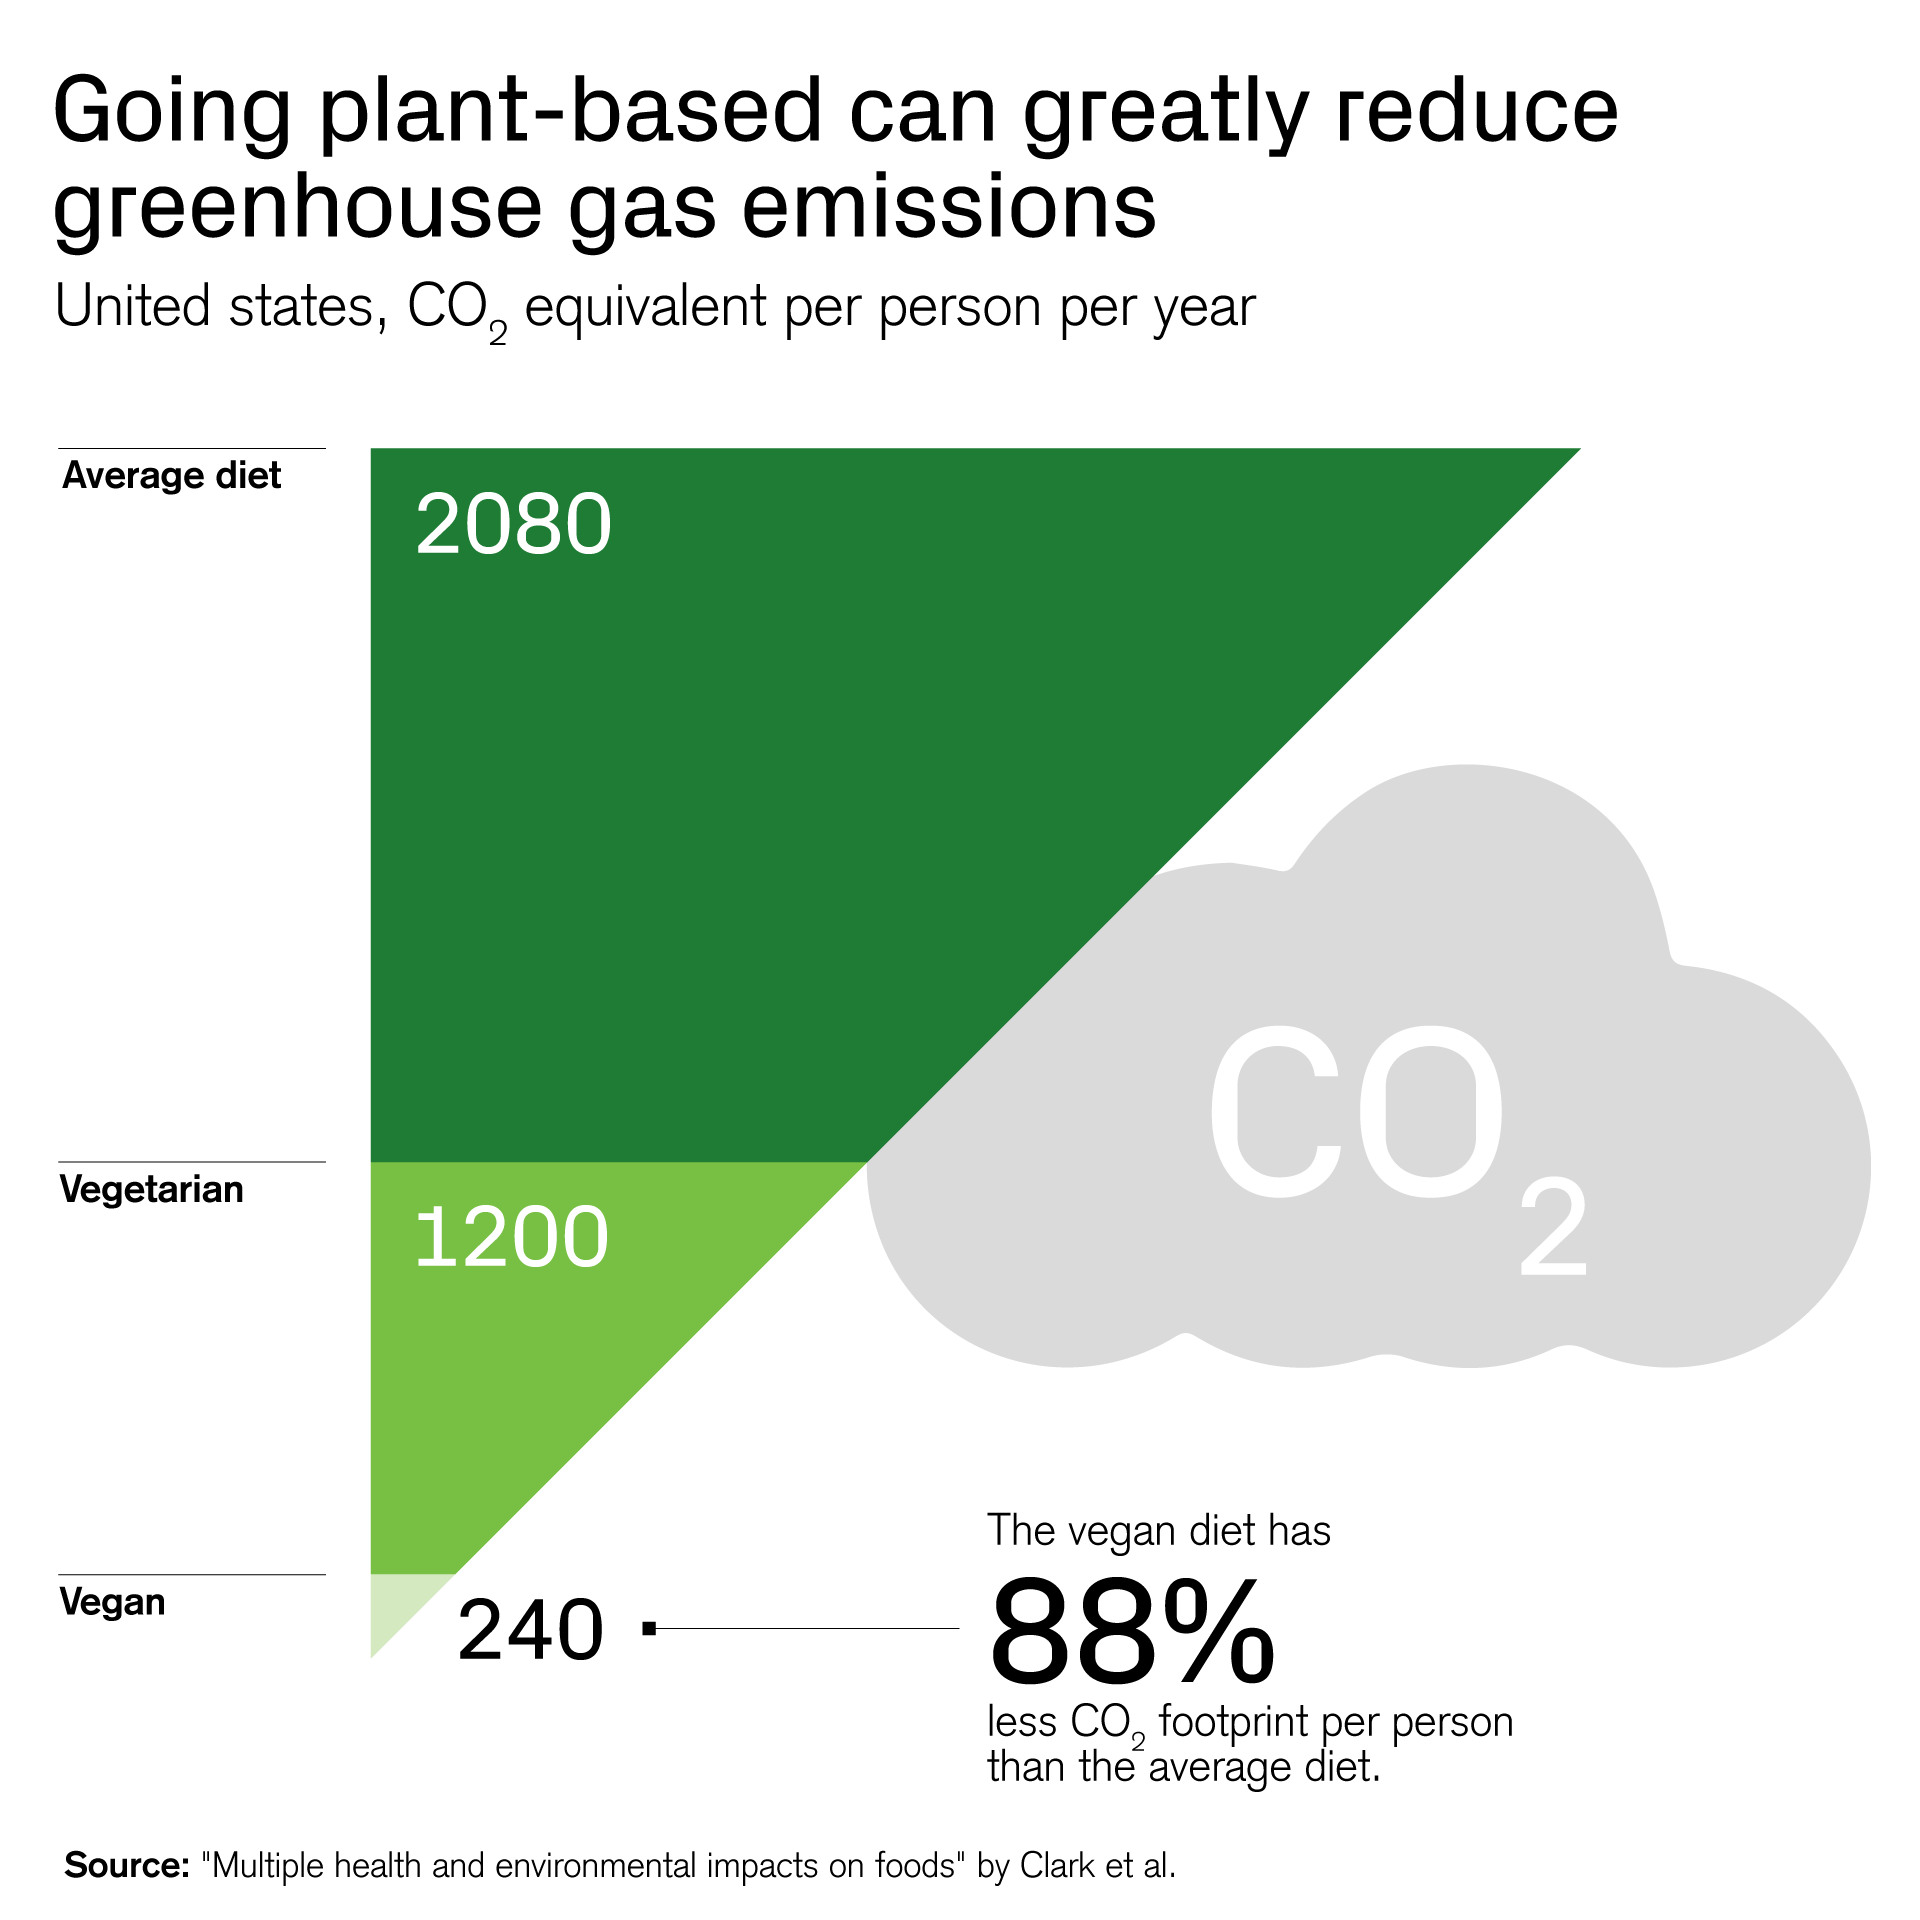 Going plant-based can greatly reduce greenhouse gas emissions